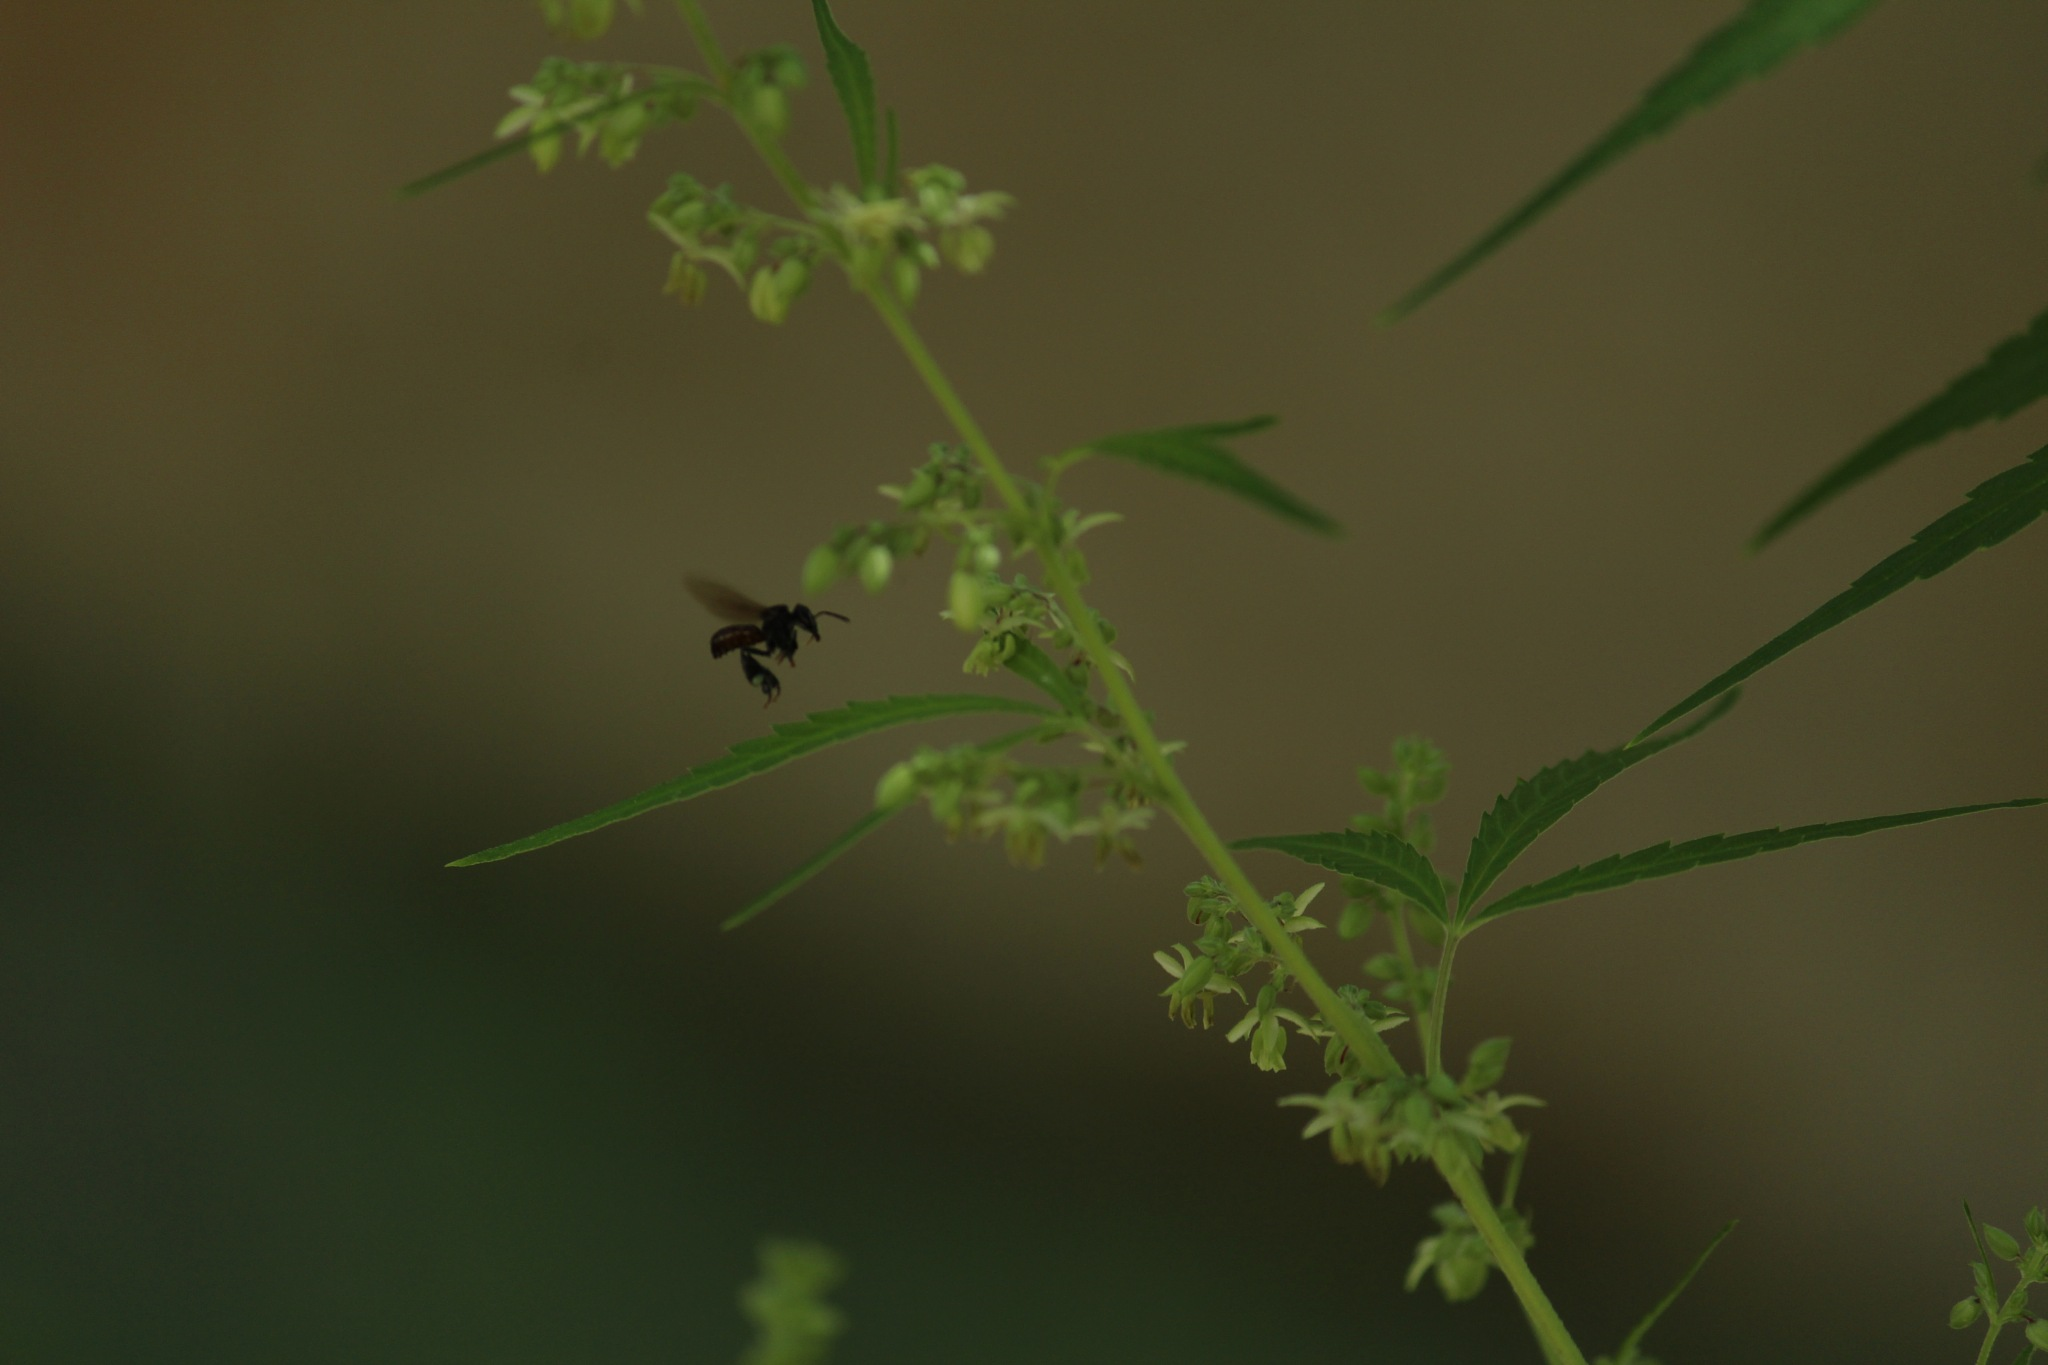 Bee on weed by Guido Muller